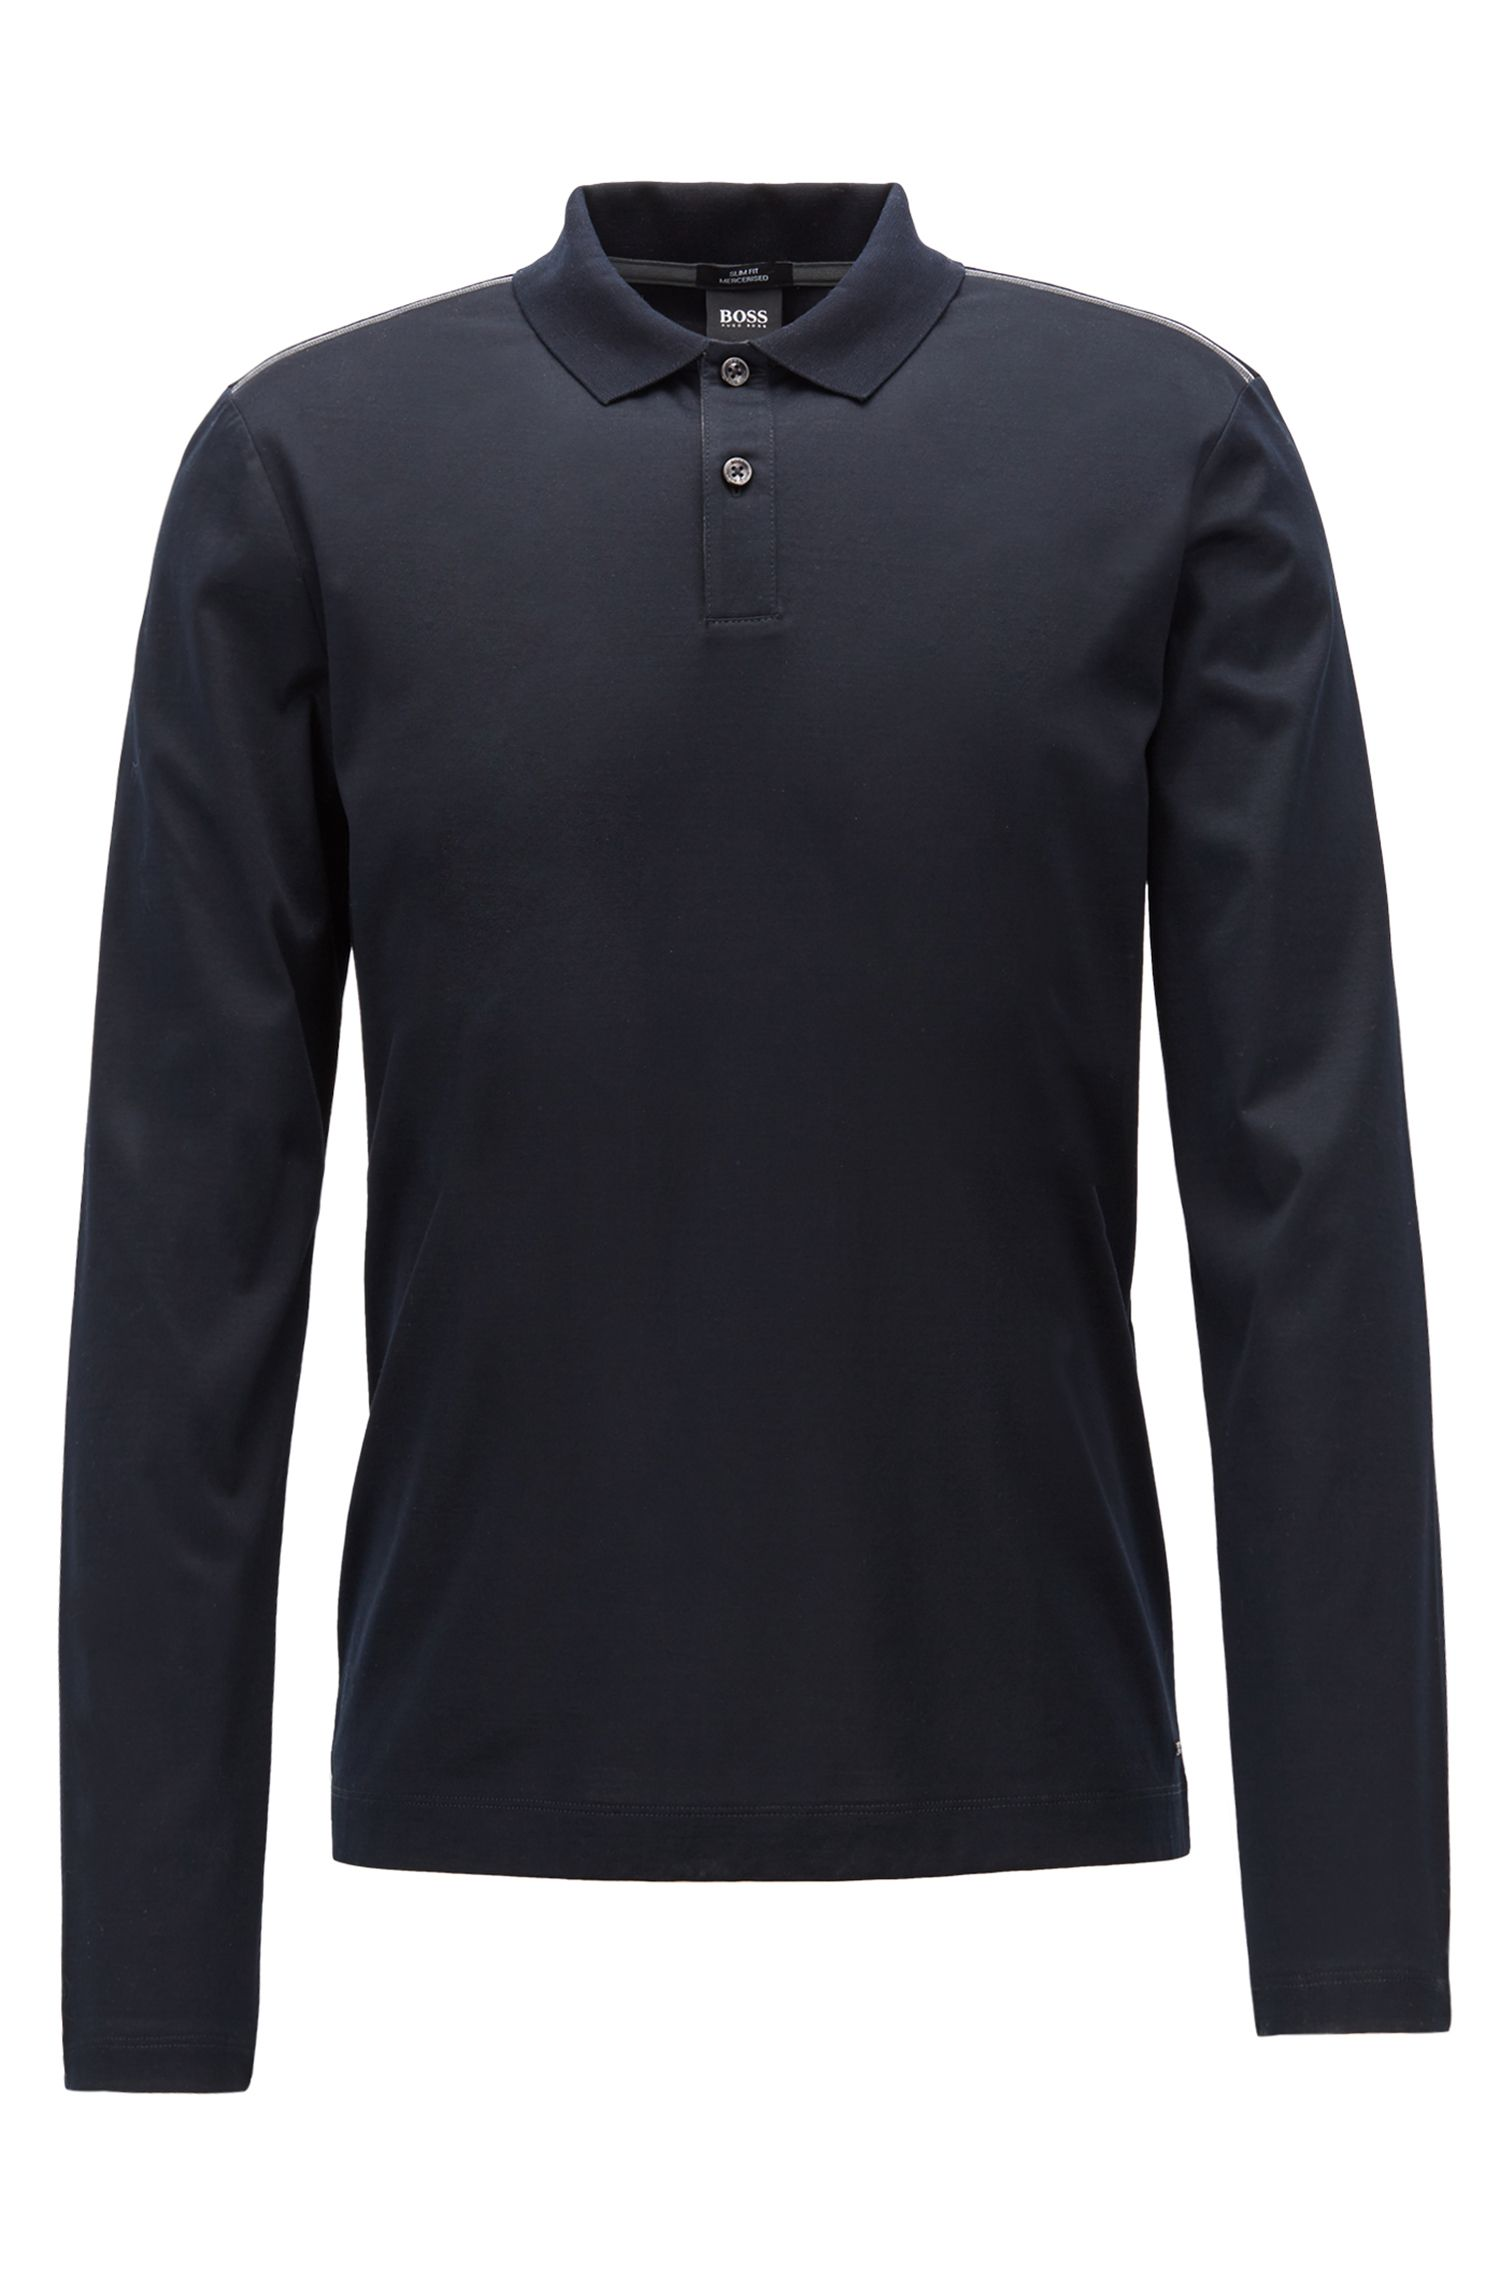 Slim-fit long-sleeved polo shirt in mercerized cotton, Black